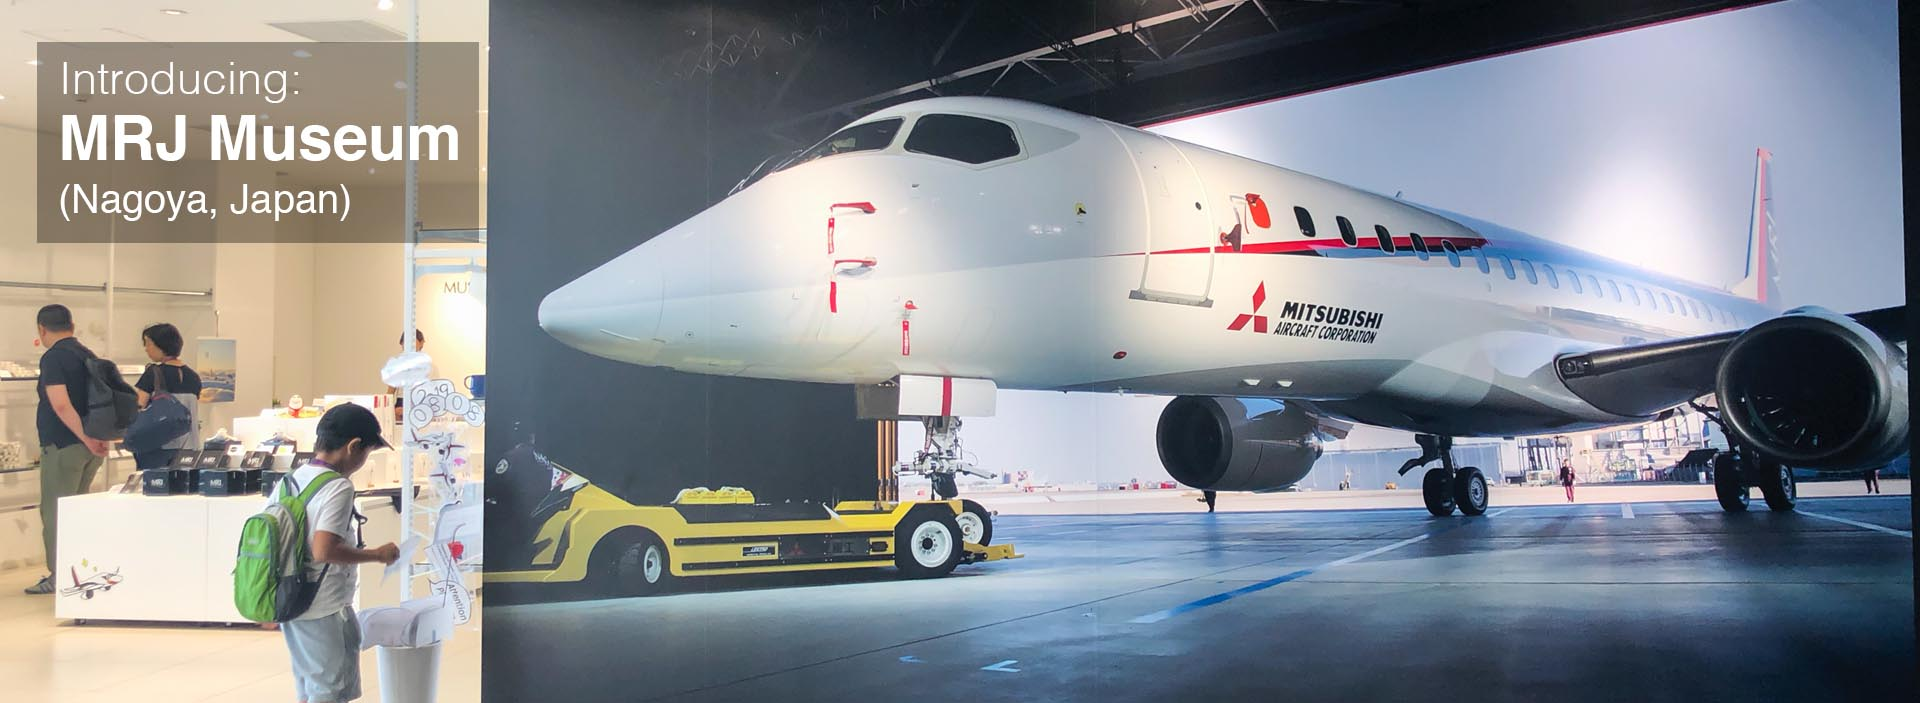 MRJ Museum: A Peek into the Production of Mitsubishi SpaceJet